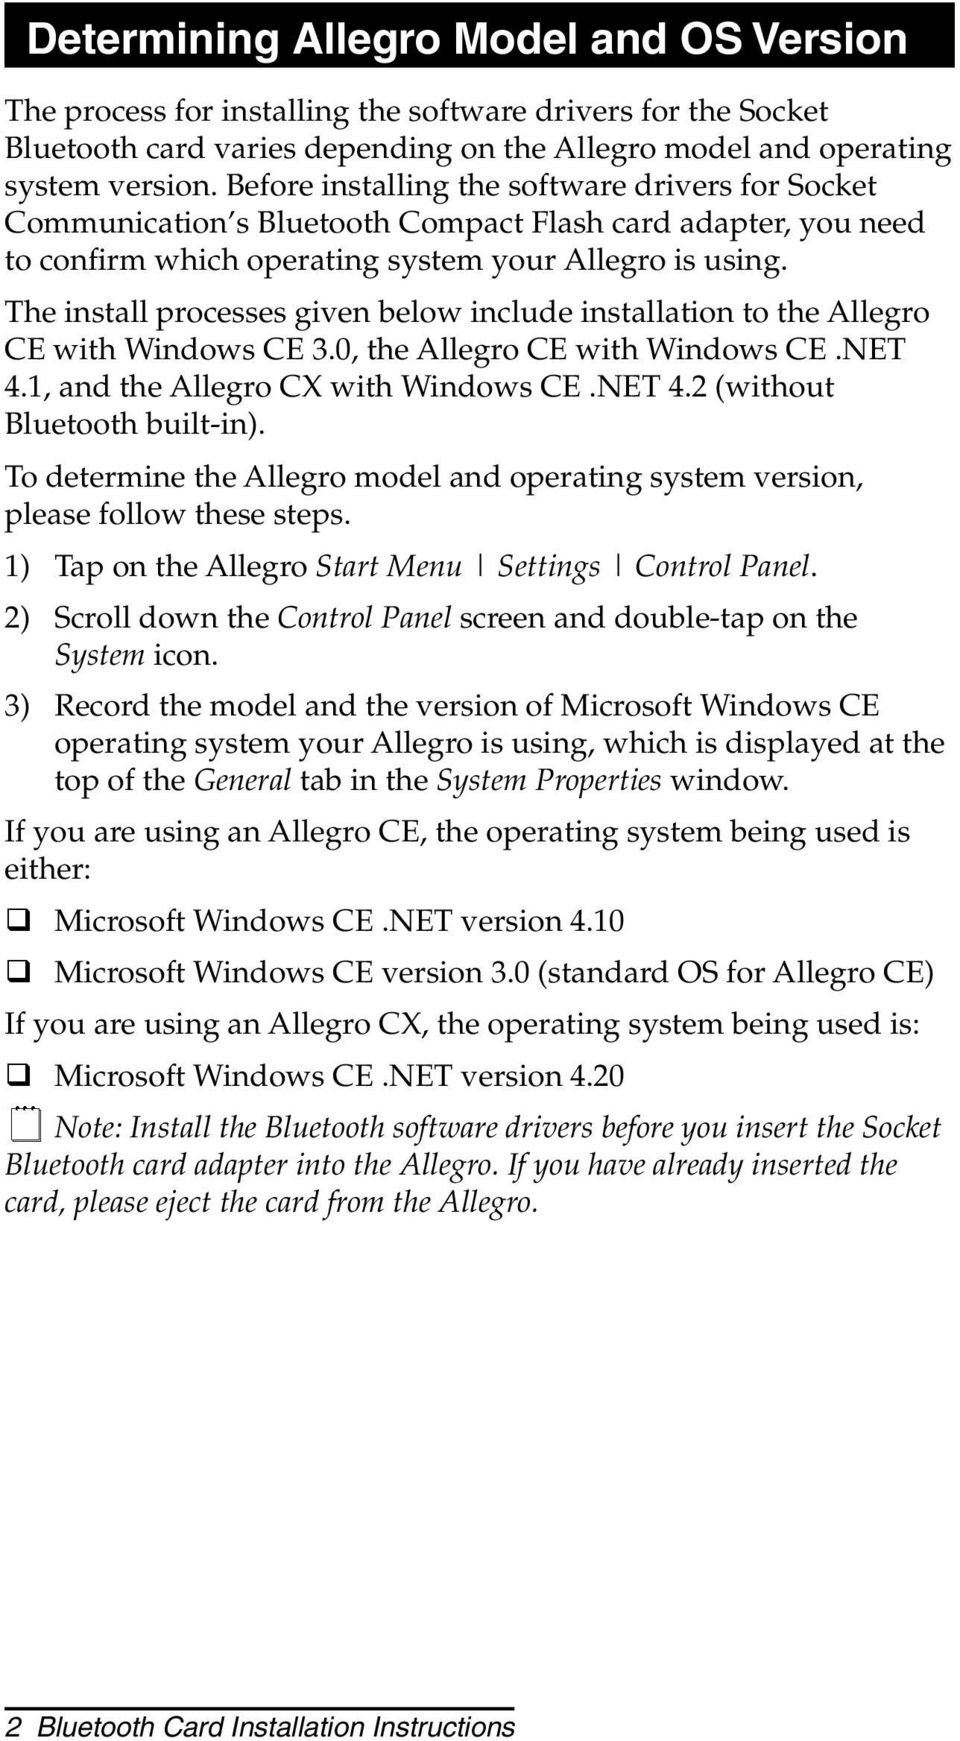 The install processes given below include installation to the Allegro CE with Windows CE 3.0, the Allegro CE with Windows CE.NET 4.1, and the Allegro CX with Windows CE.NET 4.2 (without Bluetooth built-in).